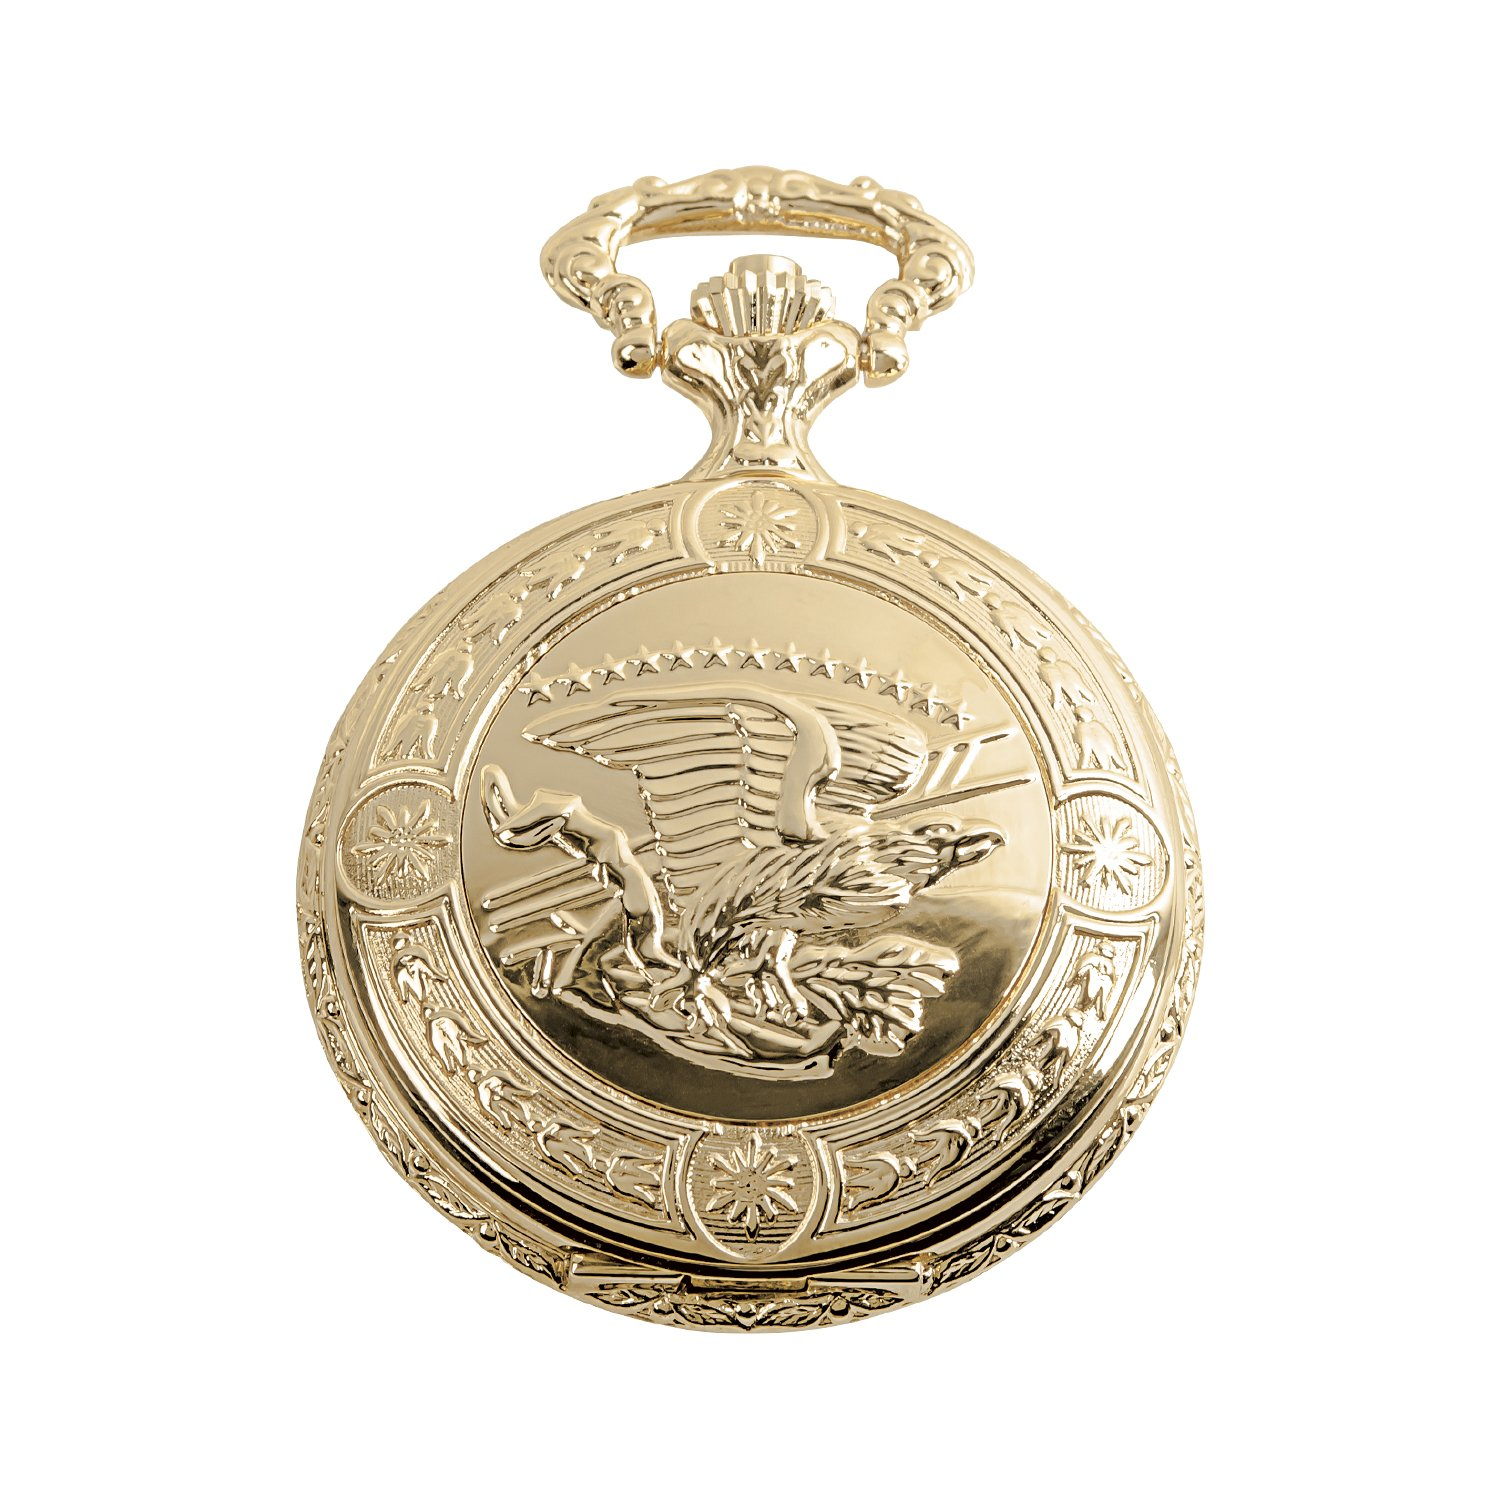 Daniel Steiger Flying Eagle Luxury Vintage Hunter Pocket Watch with Chain - Hand-Made Hunter Pocket Watch - 18k Gold Finish - Engraved Flying Eagle Design - White Dial with Black Roman Numerals by Daniel Steiger